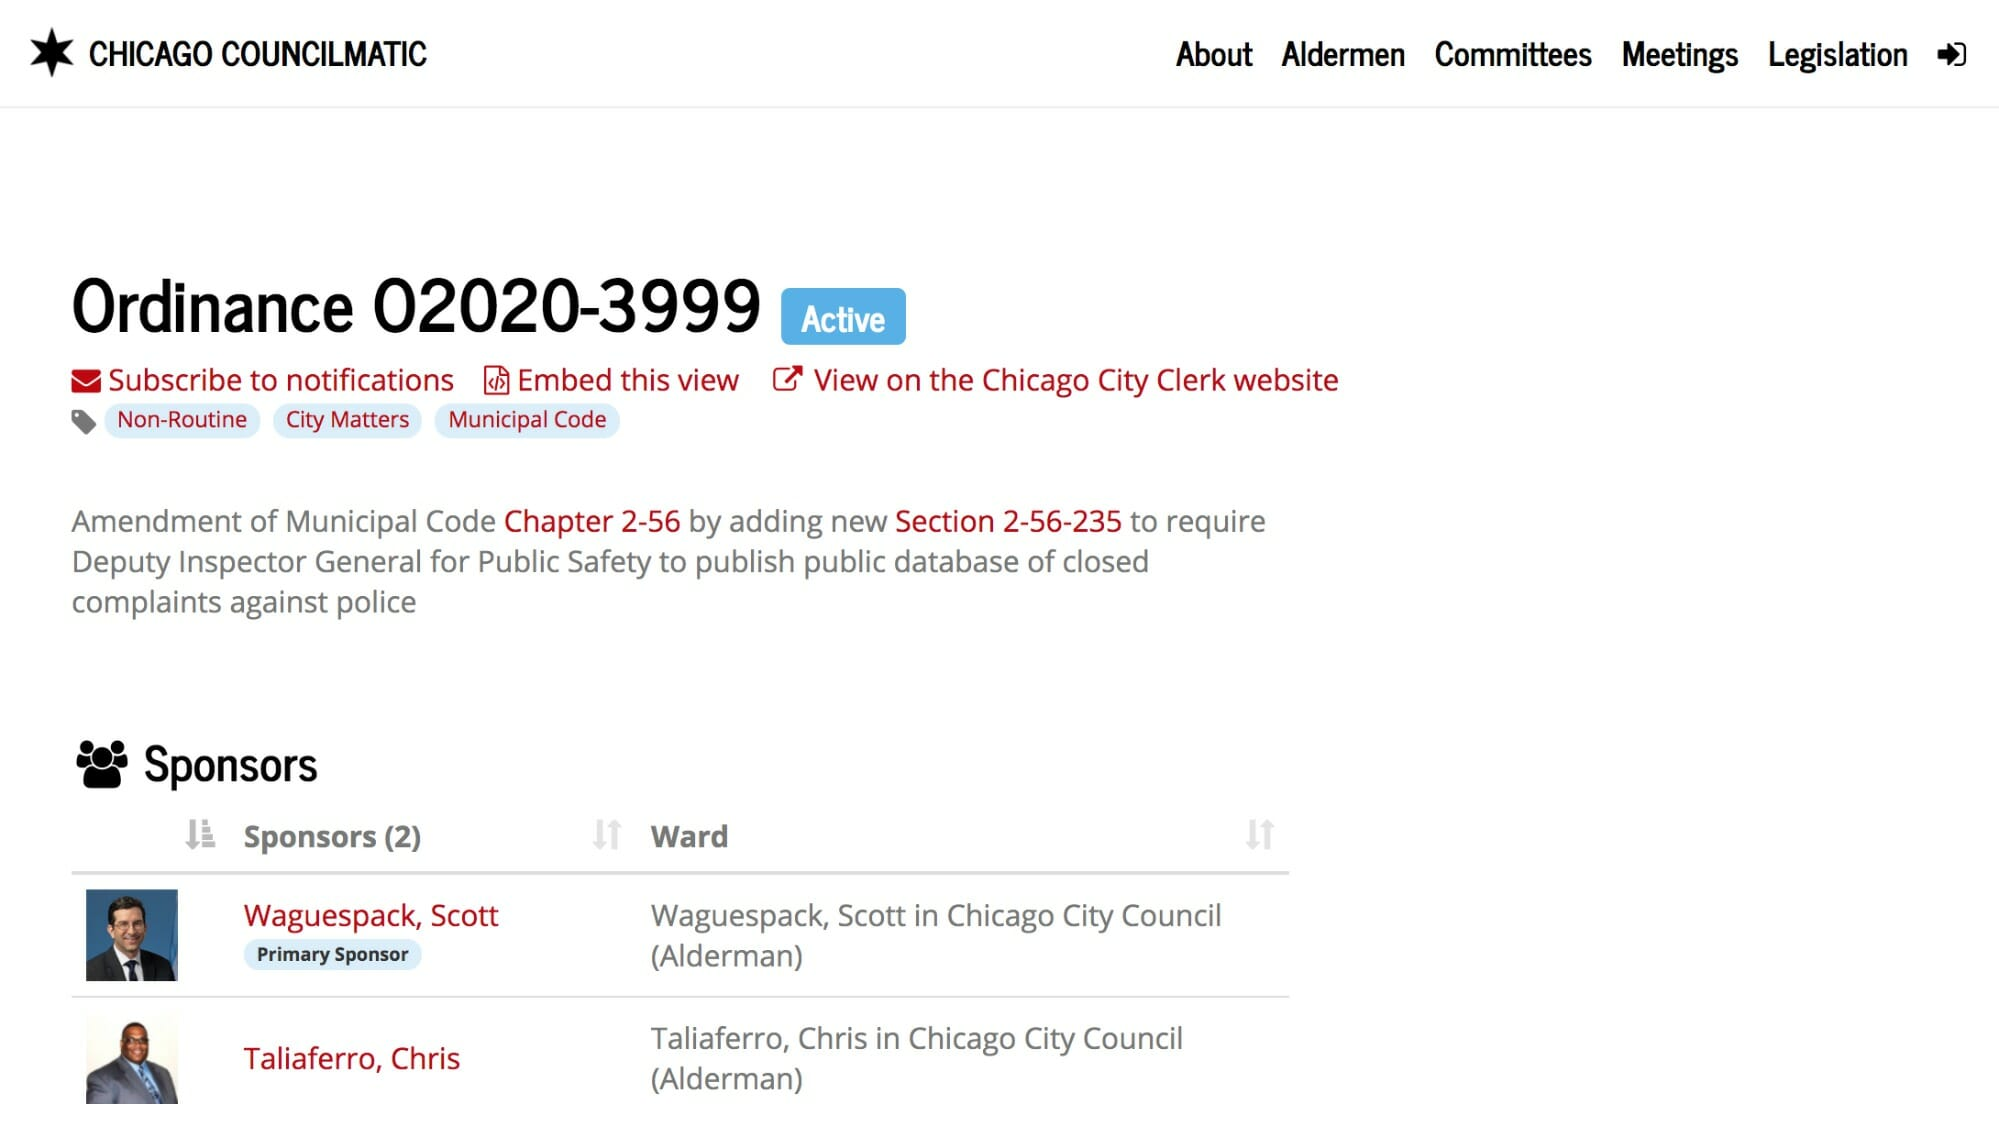 screenshot from the Councilmatic website of a local ordinance